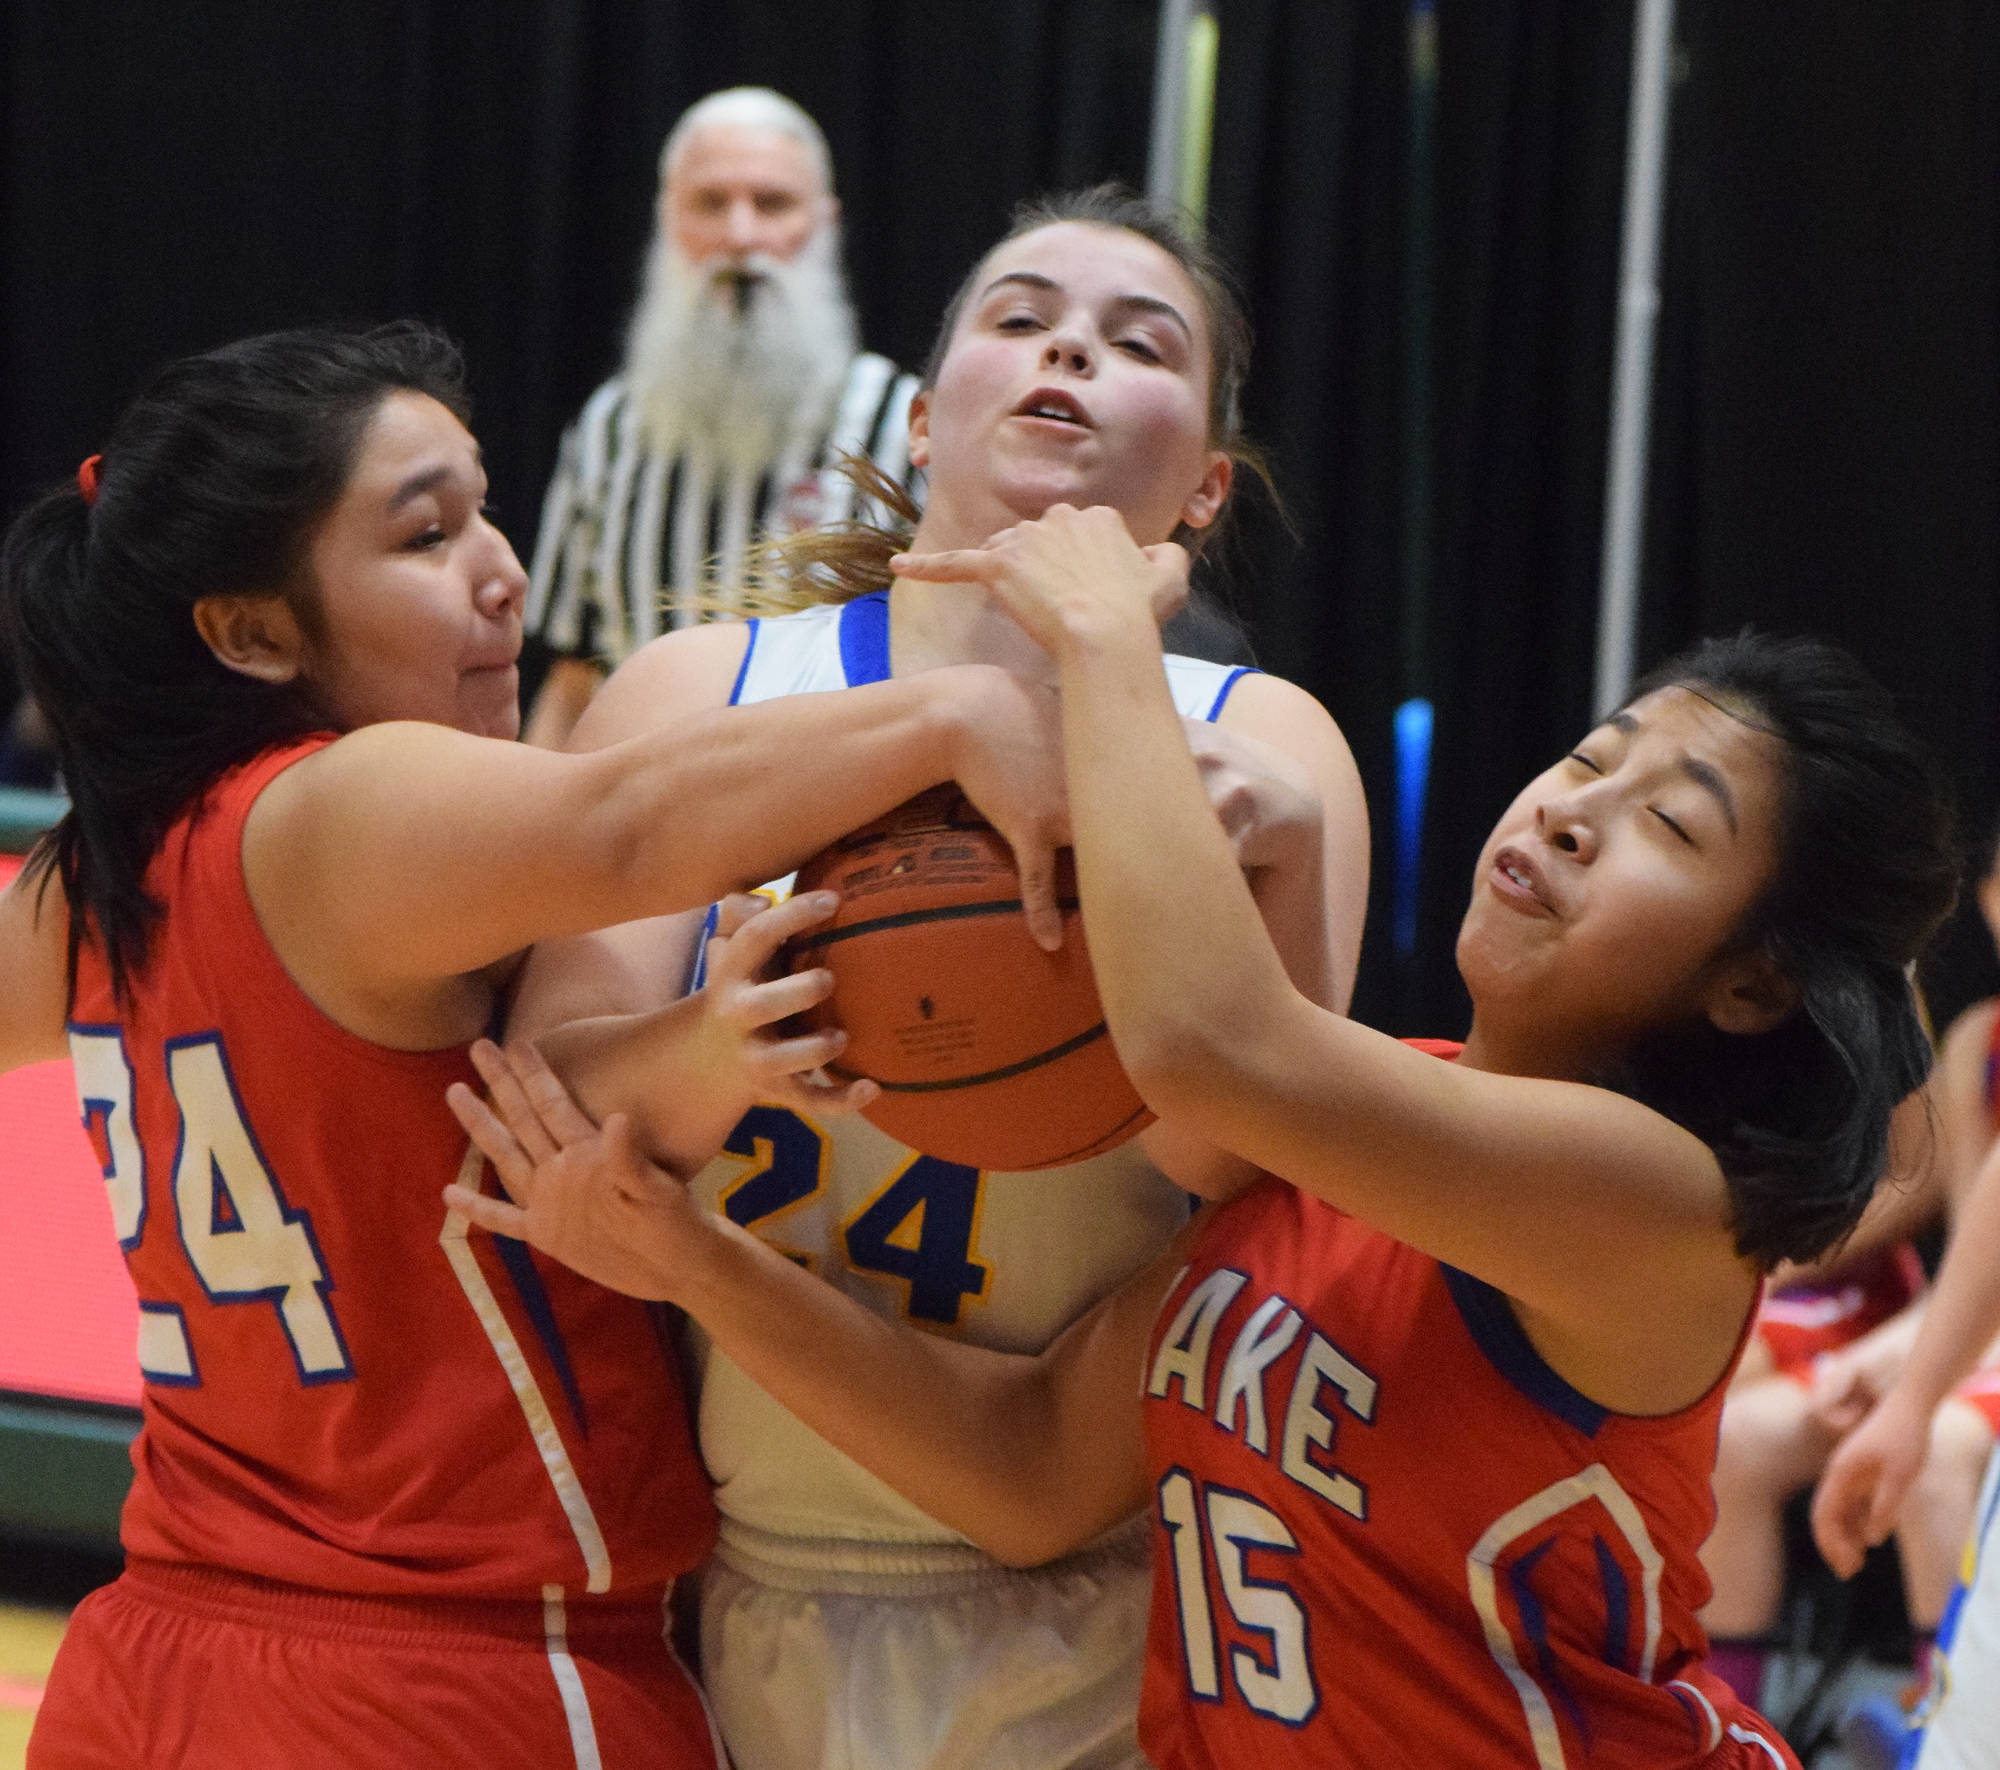 Cook Inlet Academy's Anna Cizek (middle) fights for a rebound with Kake's Felicia Ross-Shaquanie (left) and Dionna Jackson, Wednesday at the Class 1A girls basketball state tournament at the Alaska Airlines Center in Anchorage. (Photo by Joey Klecka/Peninsula Clarion)